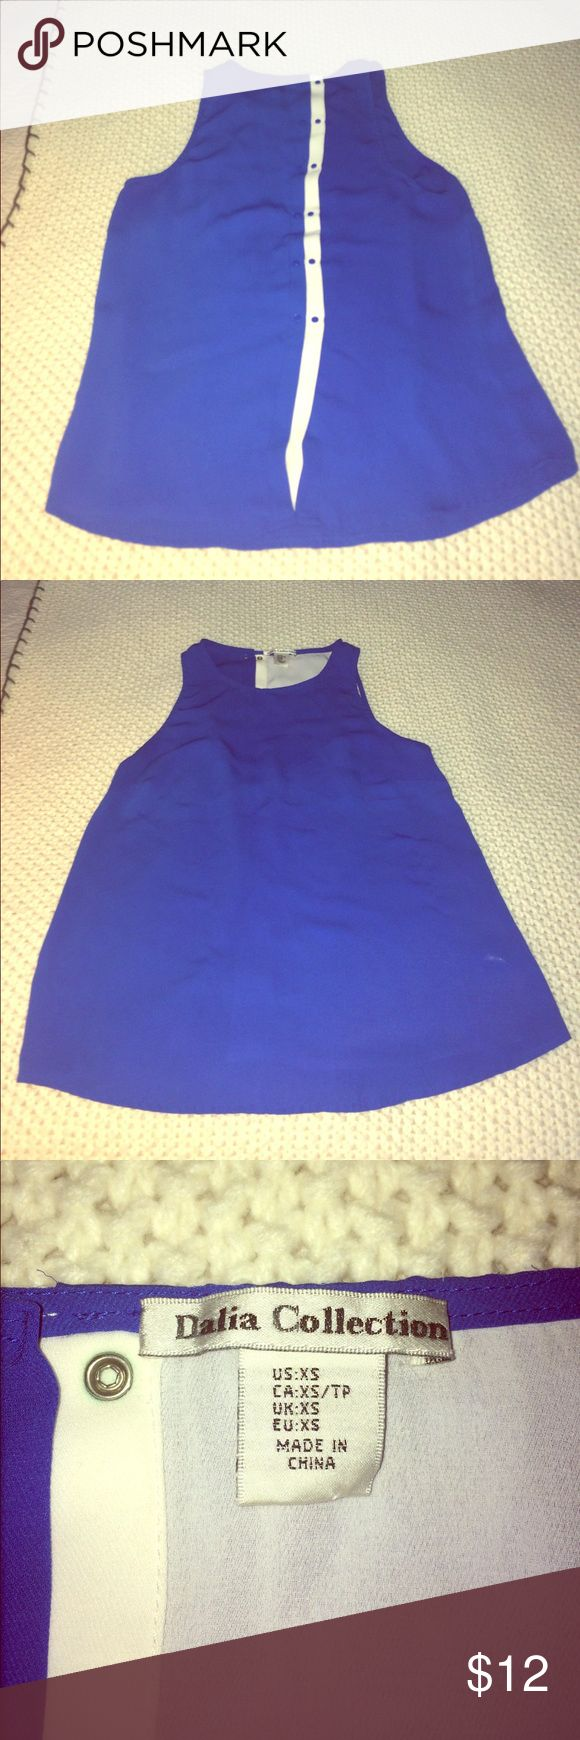 Women's two tone tank top XS Royal blue and white tank top blouse.  100% polyester.  Buttons up back.  There are two sets of buttons up the back so you can adjust the size.  Tag is XS, but also comfortably fits a small.  Thread has pulled on front of top, as seen in last photo. Dalia Collection Tops Tank Tops